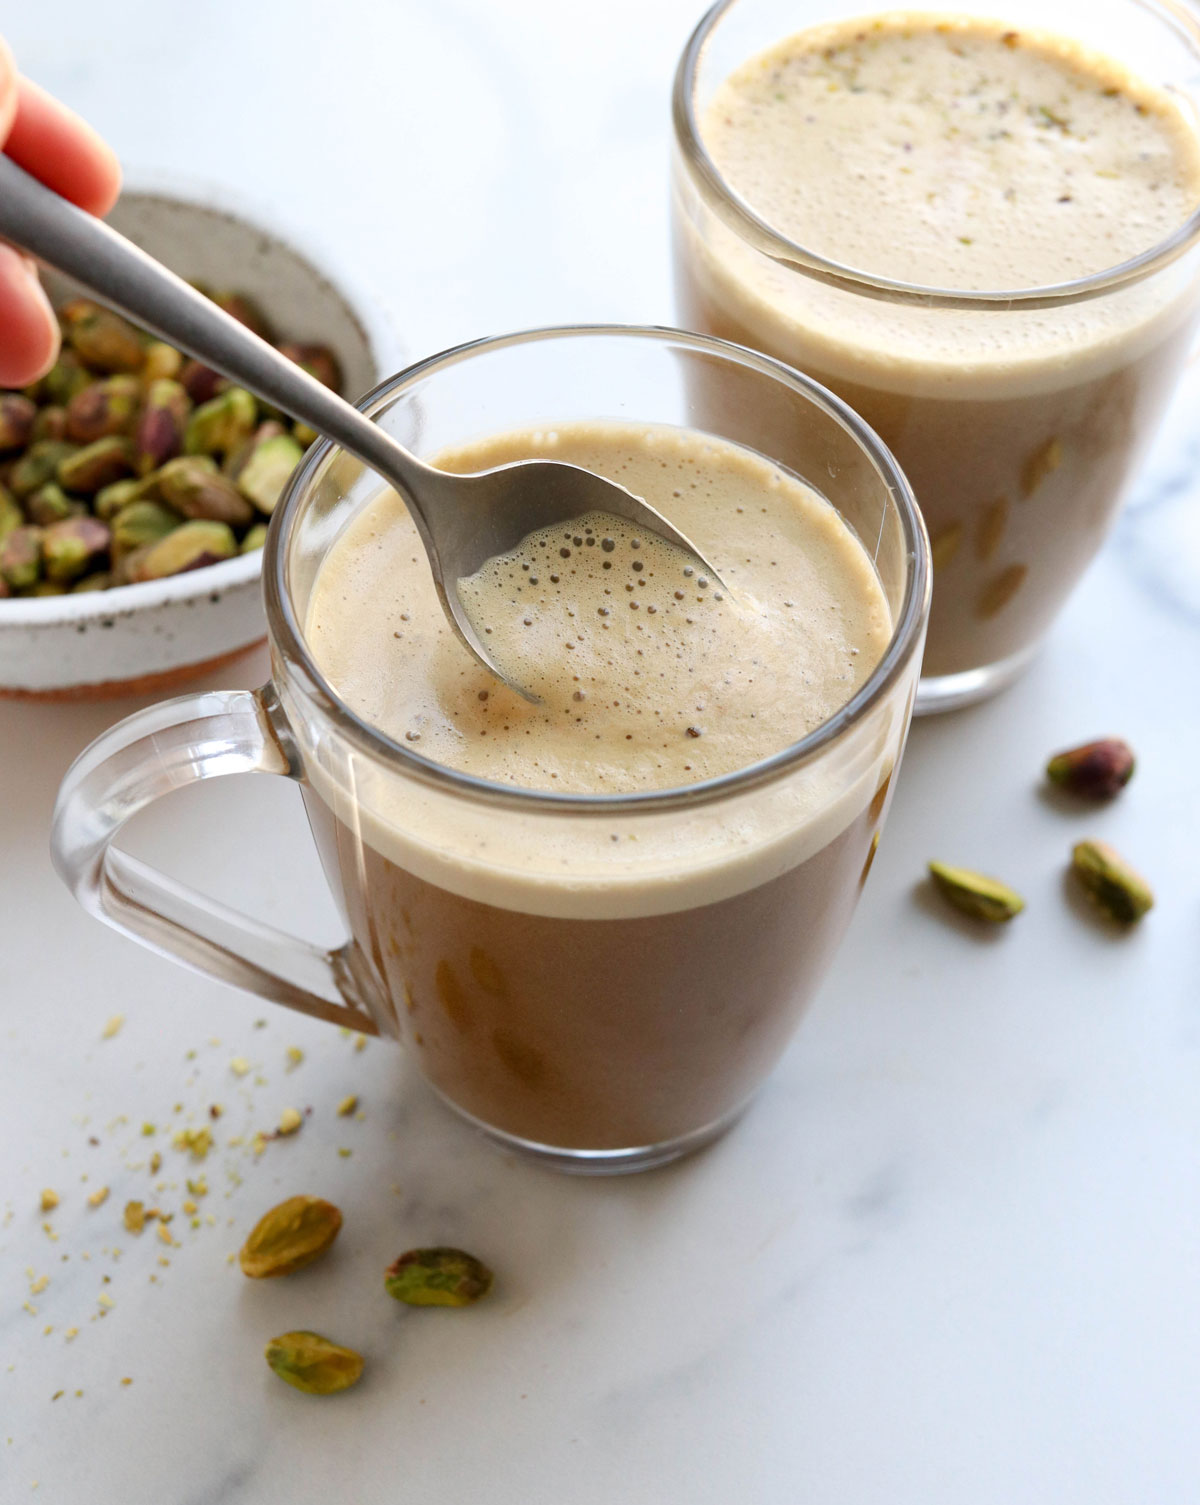 pistachio latte with spoon of foam